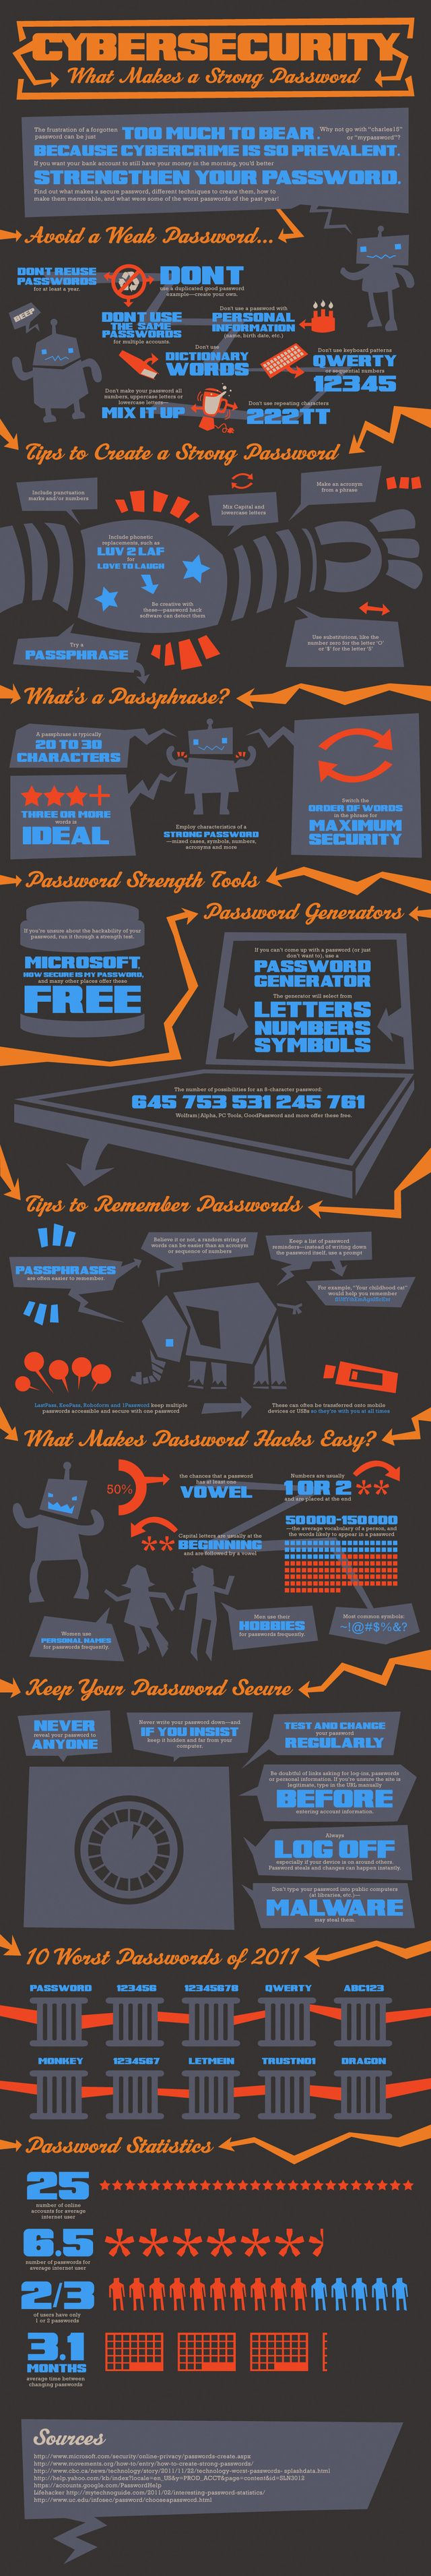 Lifehacker Use Thisgraphic To Pick A Good, Strong Password